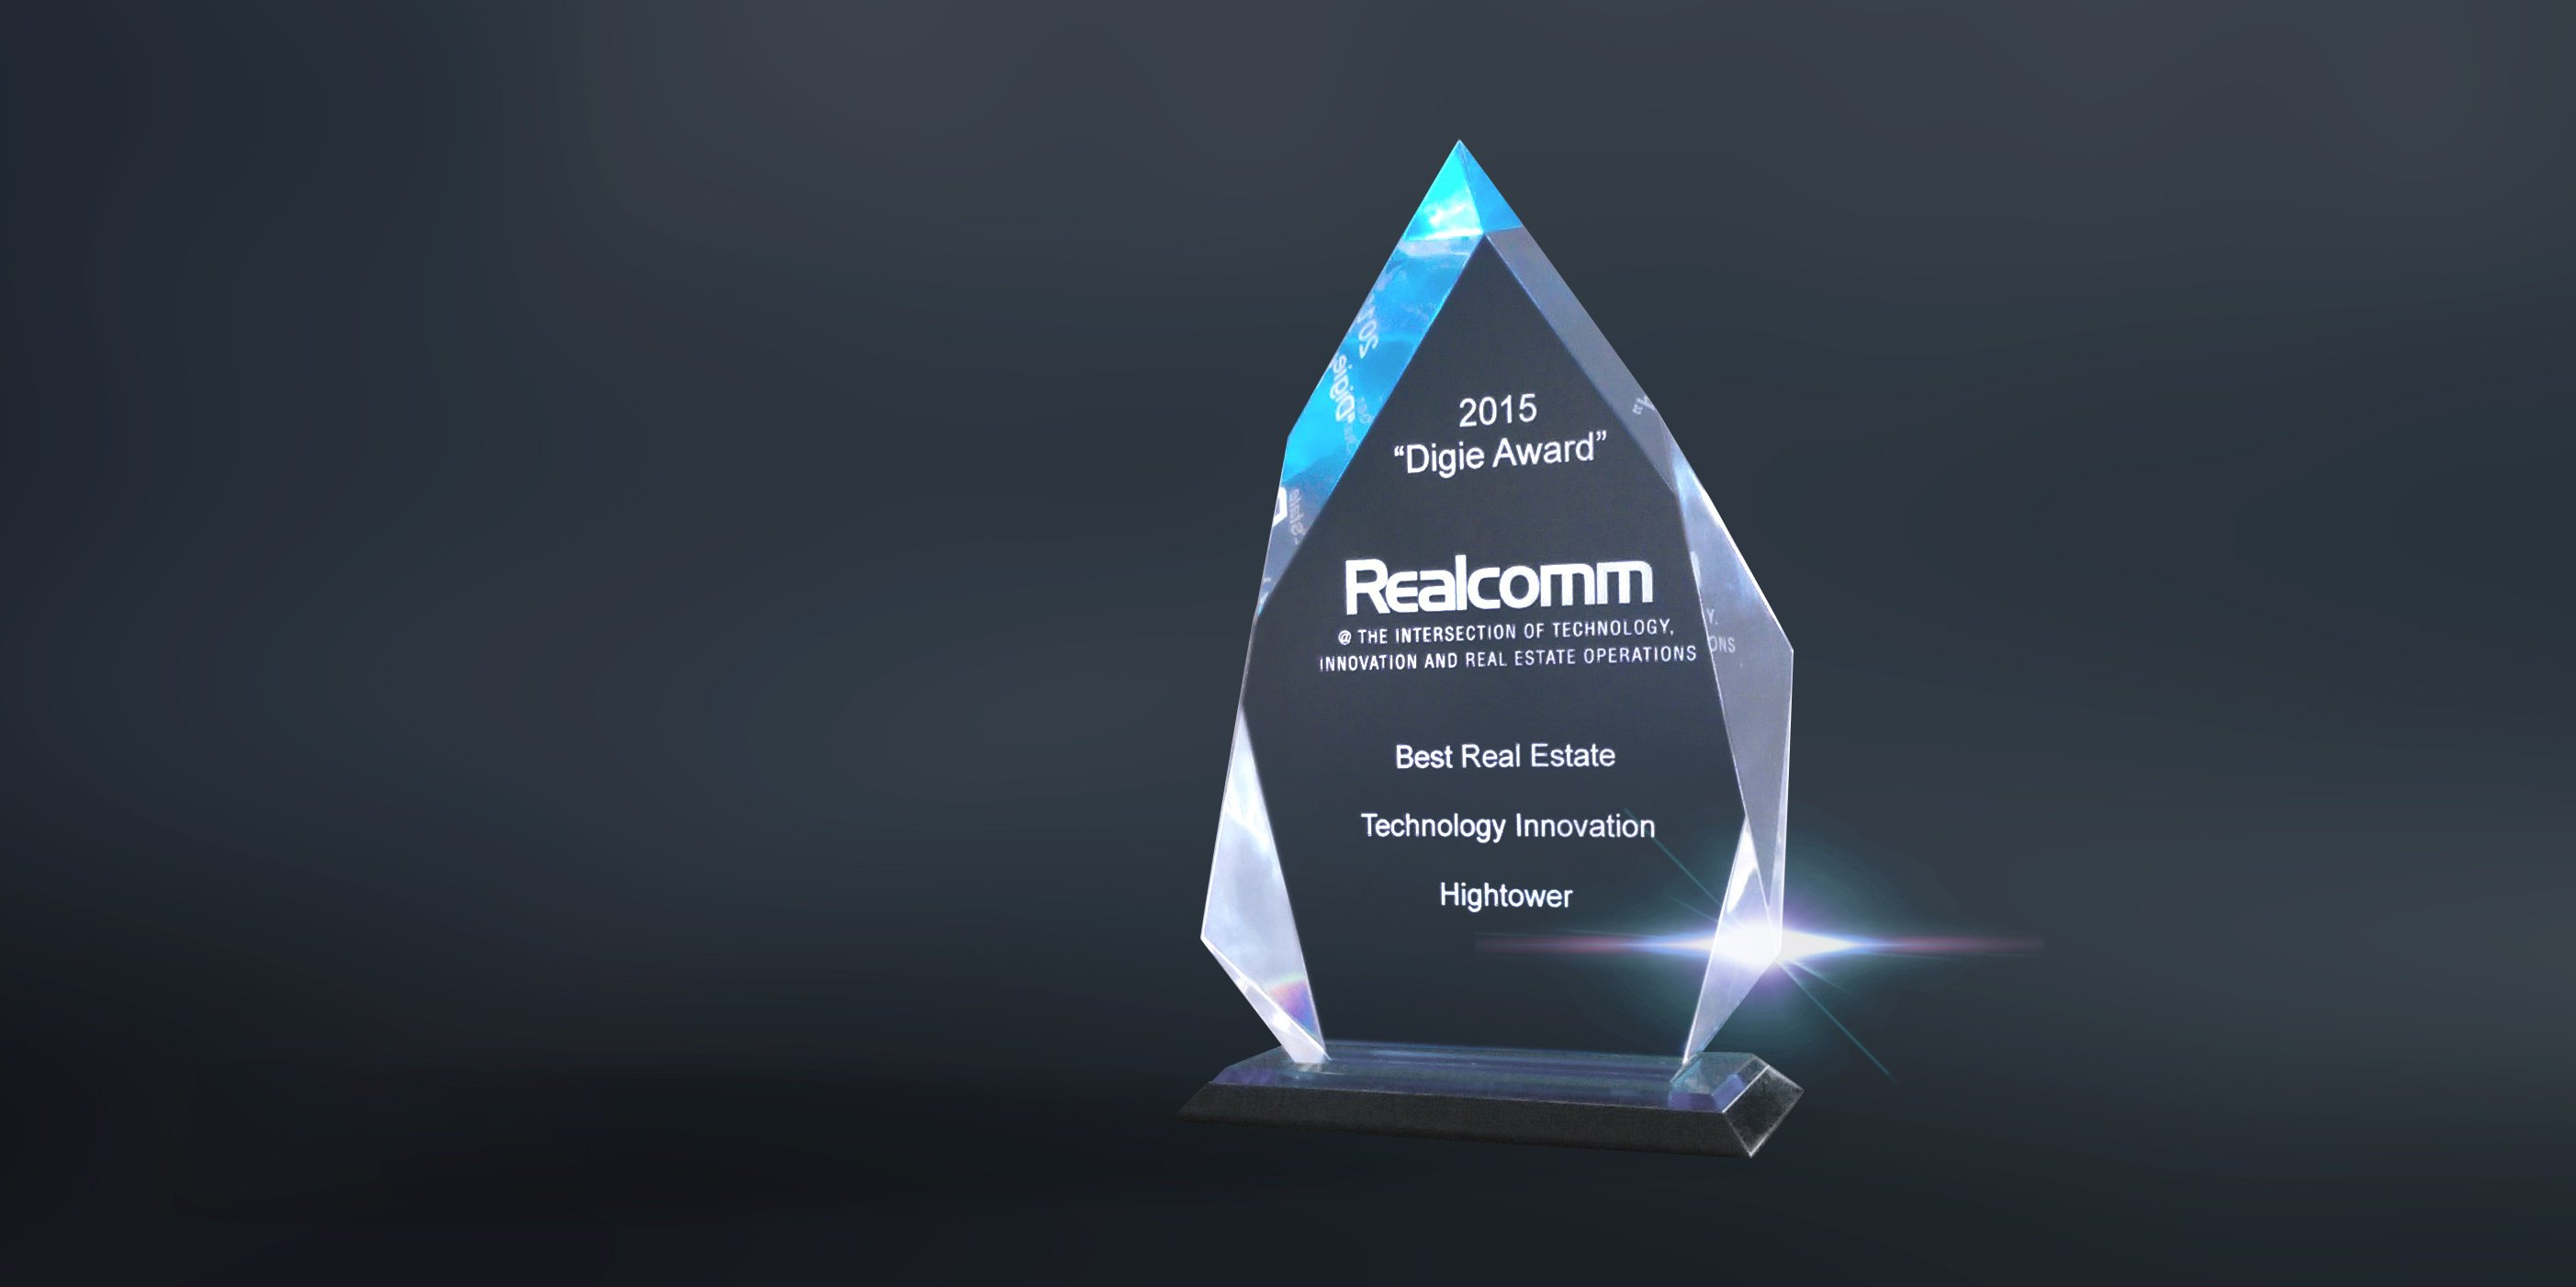 The Realcomm